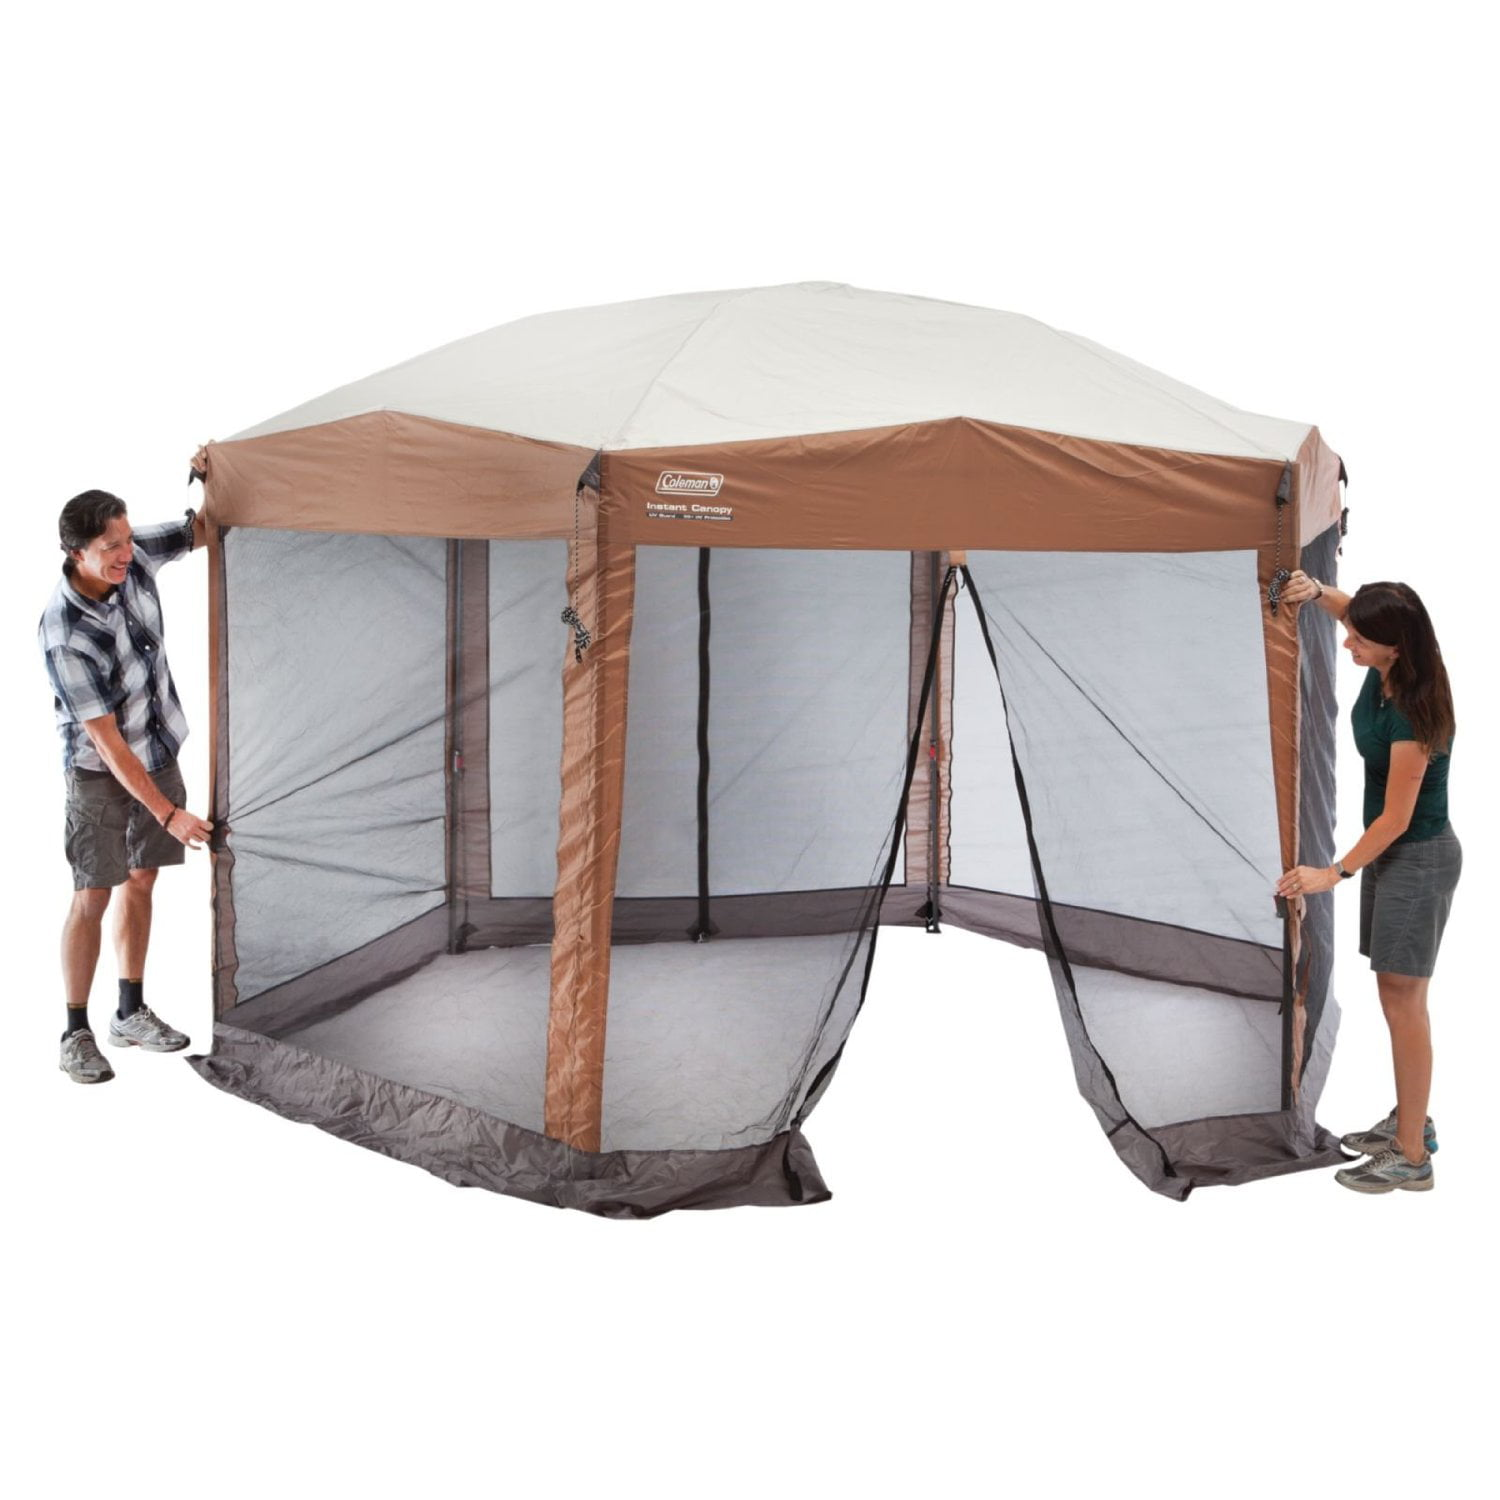 Coleman Back Home 12 x 10-Foot Instant Screen House Hexagon Canopy | 2000028003 - Walmart.com  sc 1 st  Walmart & Coleman Back Home 12 x 10-Foot Instant Screen House Hexagon Canopy ...